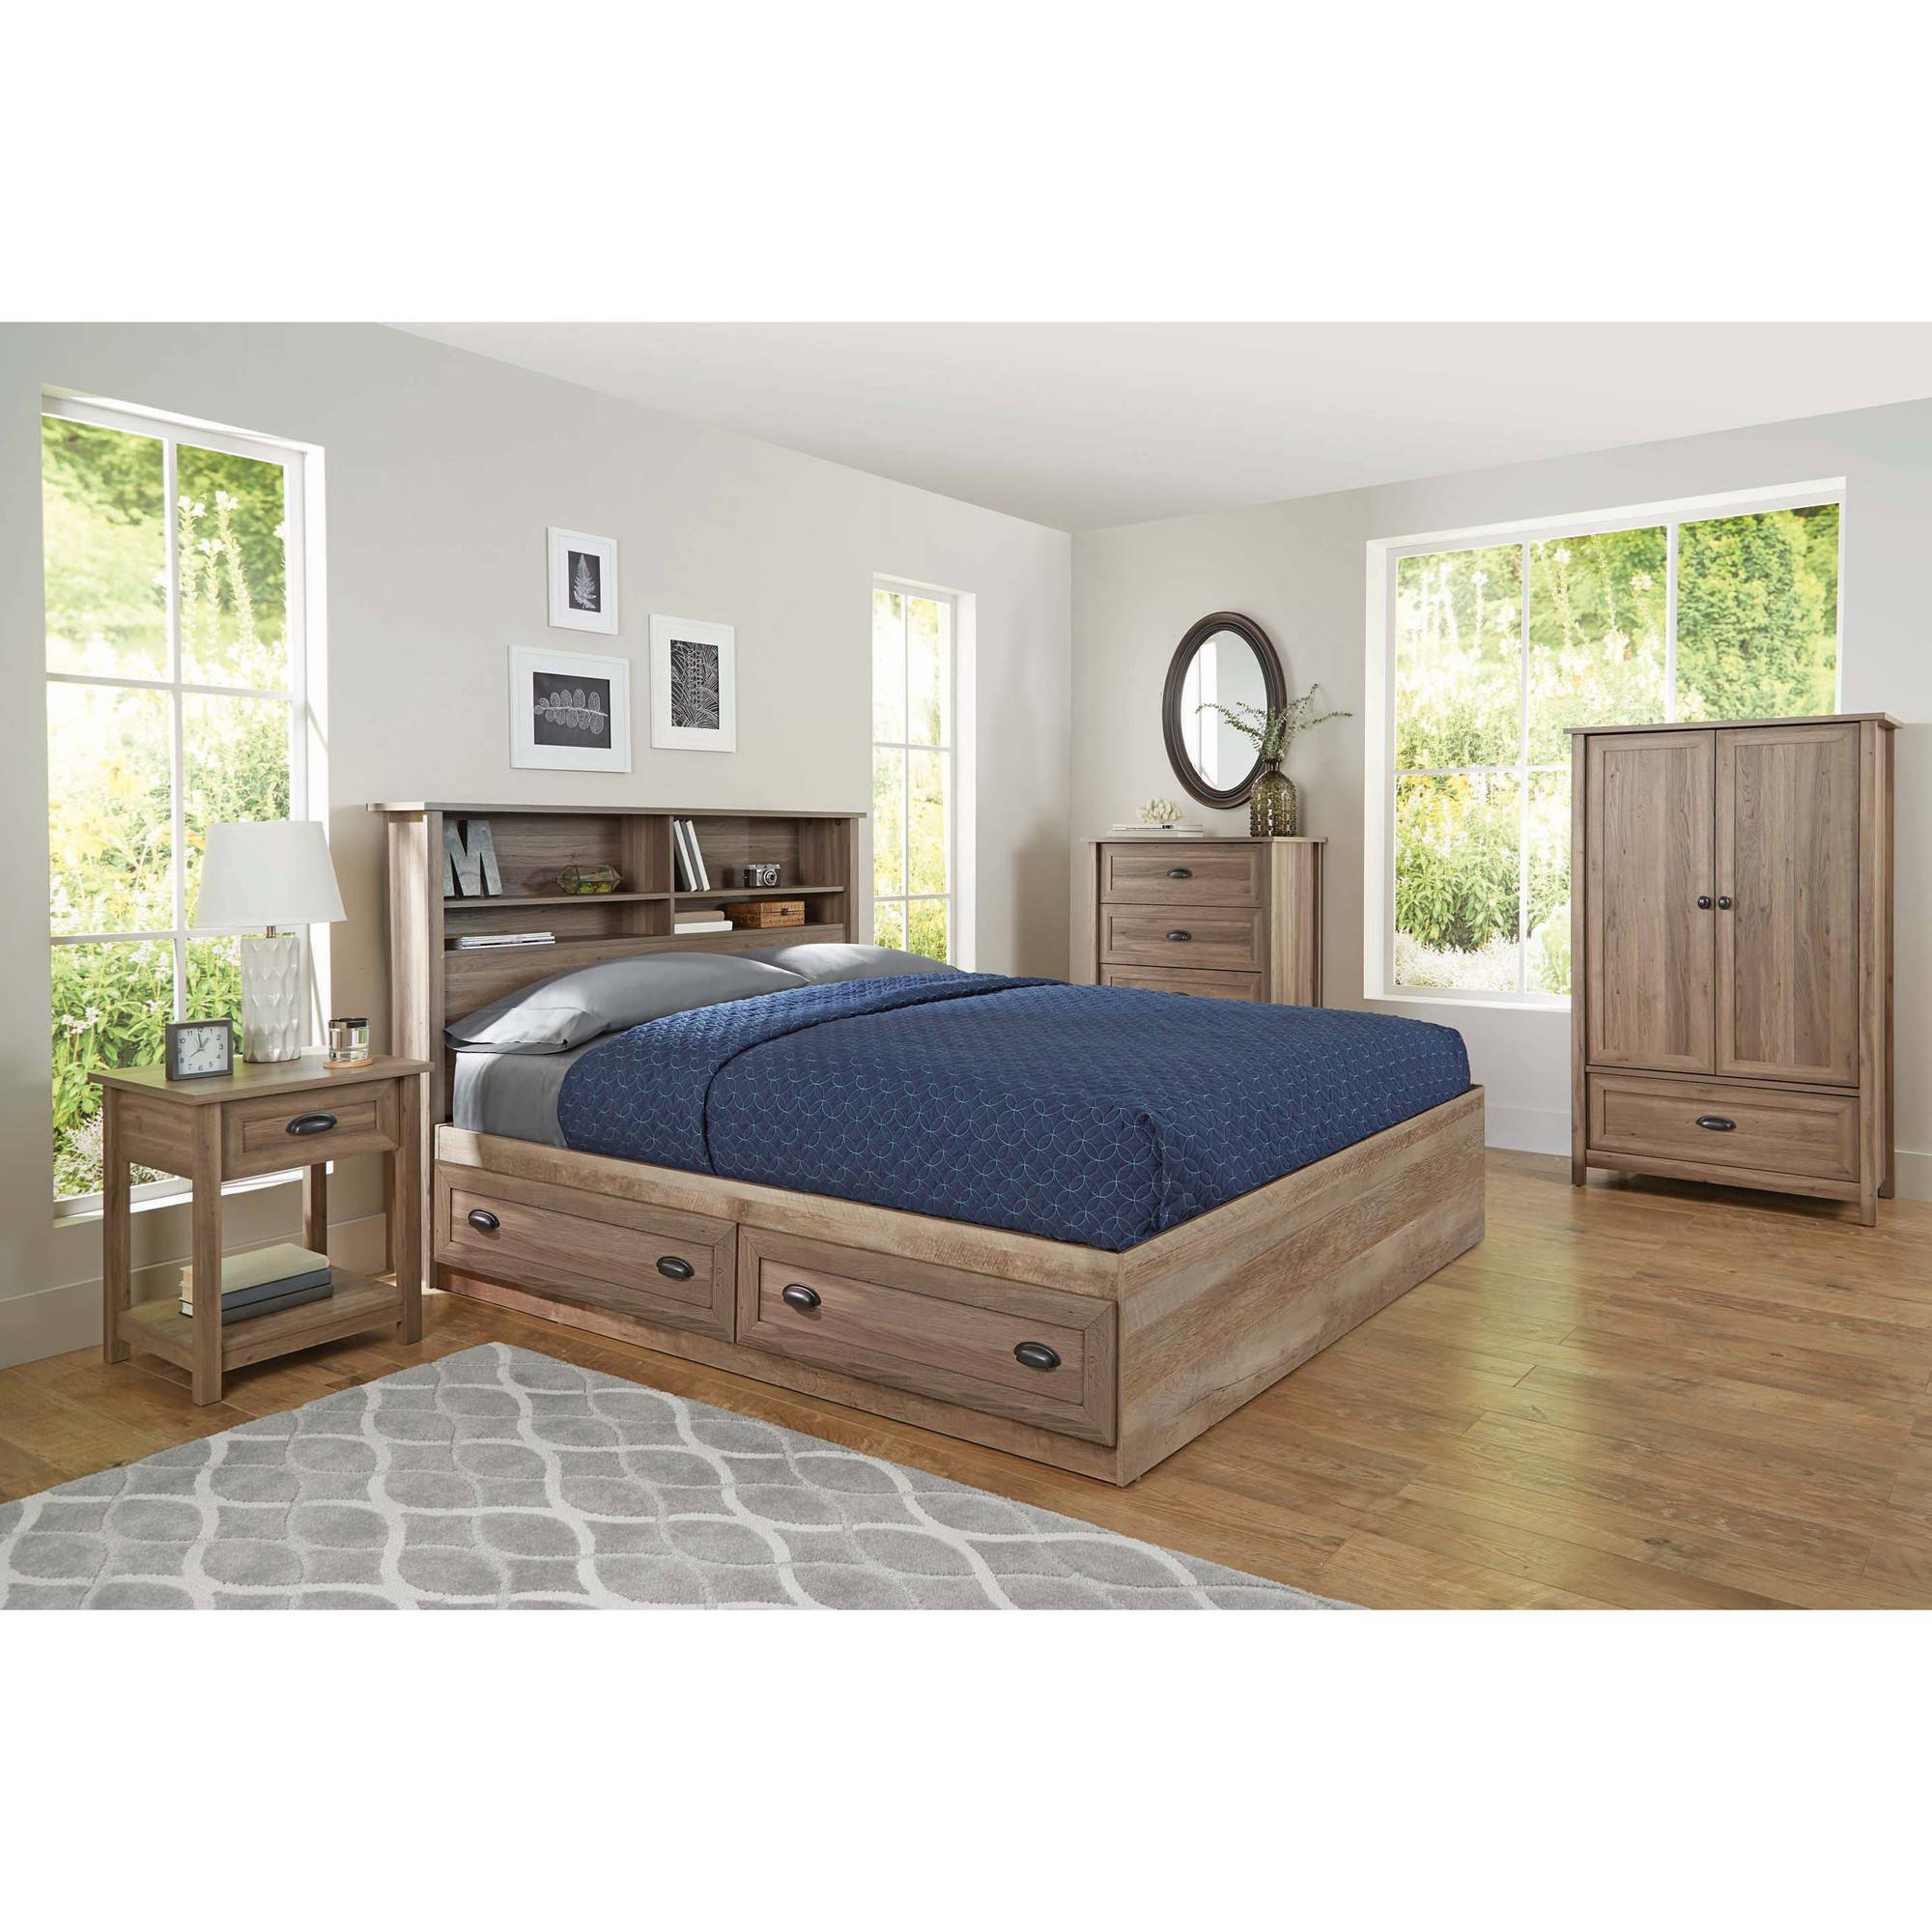 Better homes and gardens lafayette bedroom collection - Better home and garden furniture ...